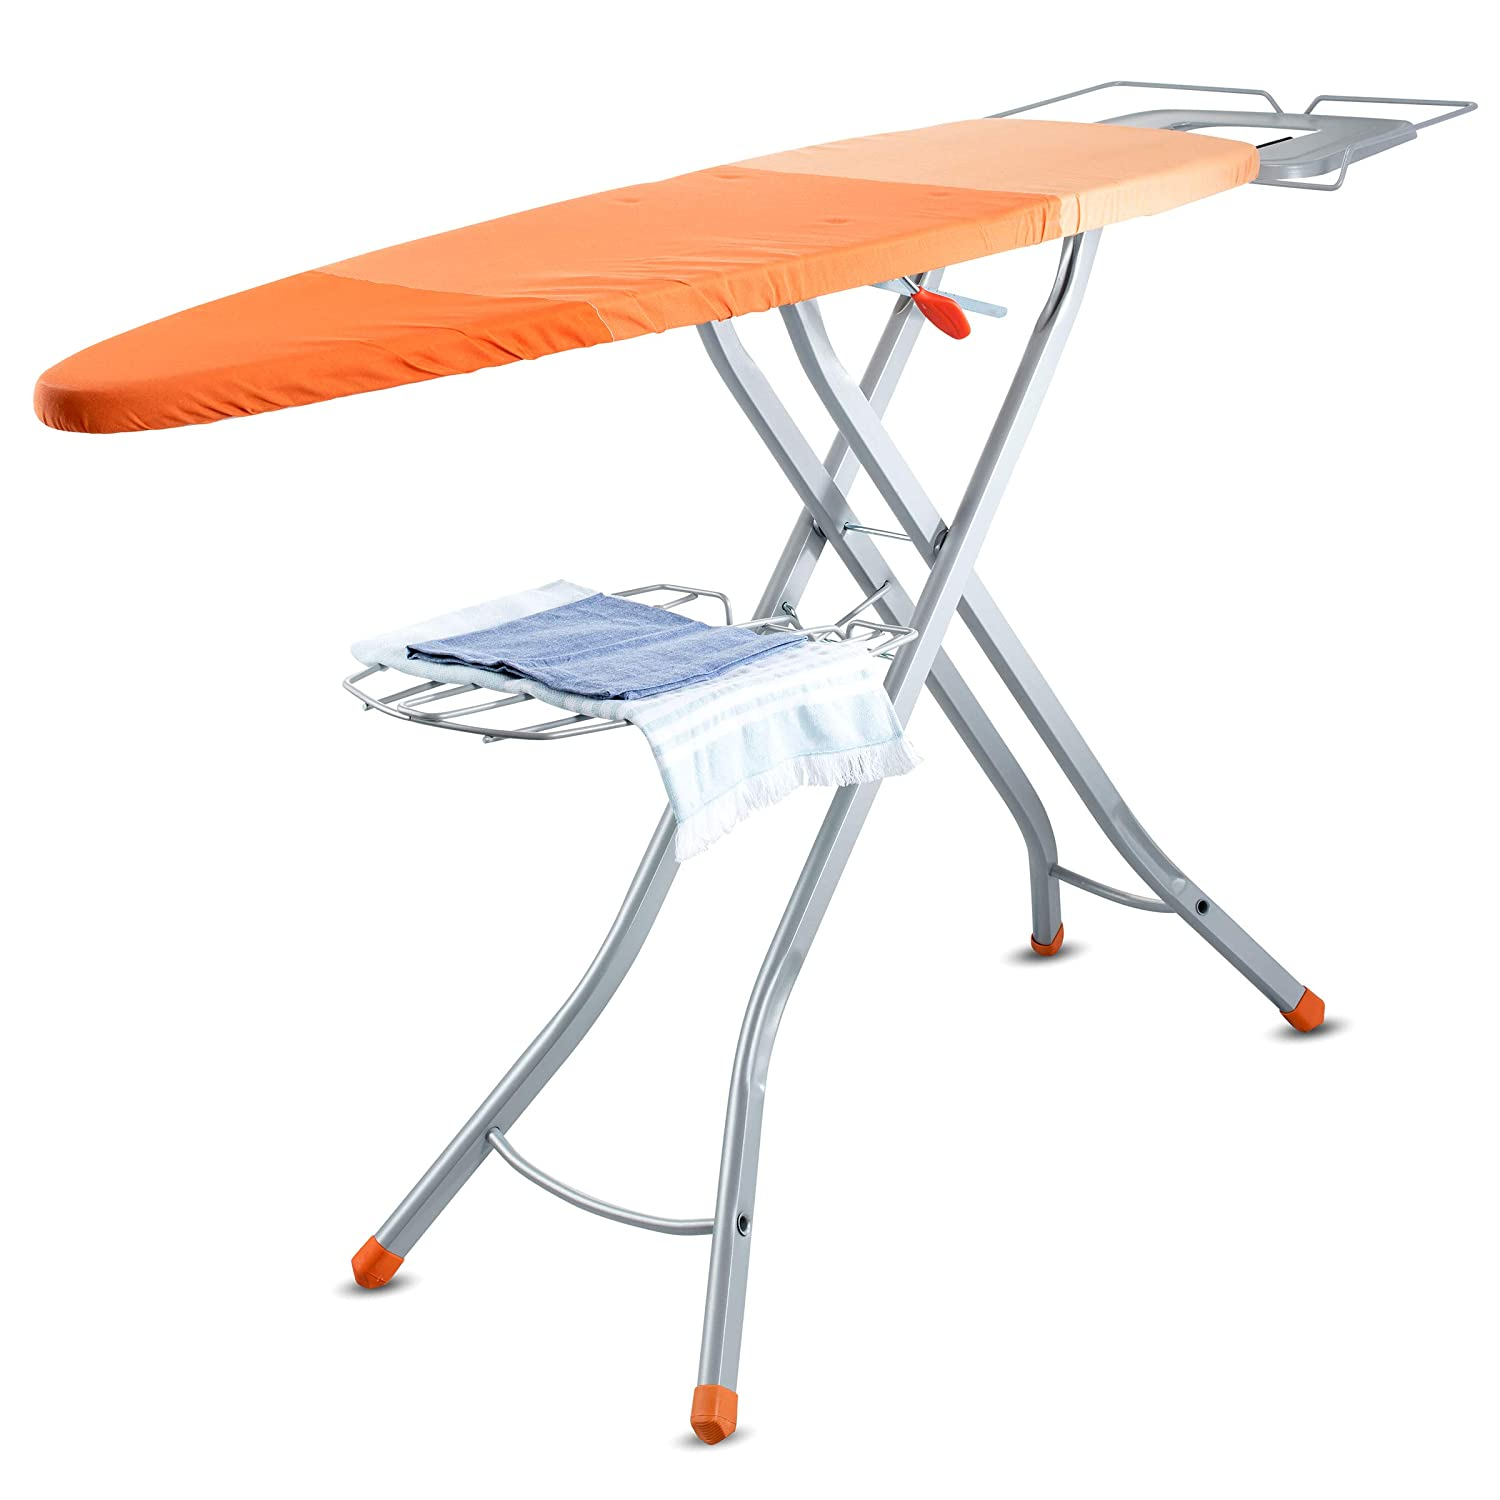 Bartnelli Ironing Board Review